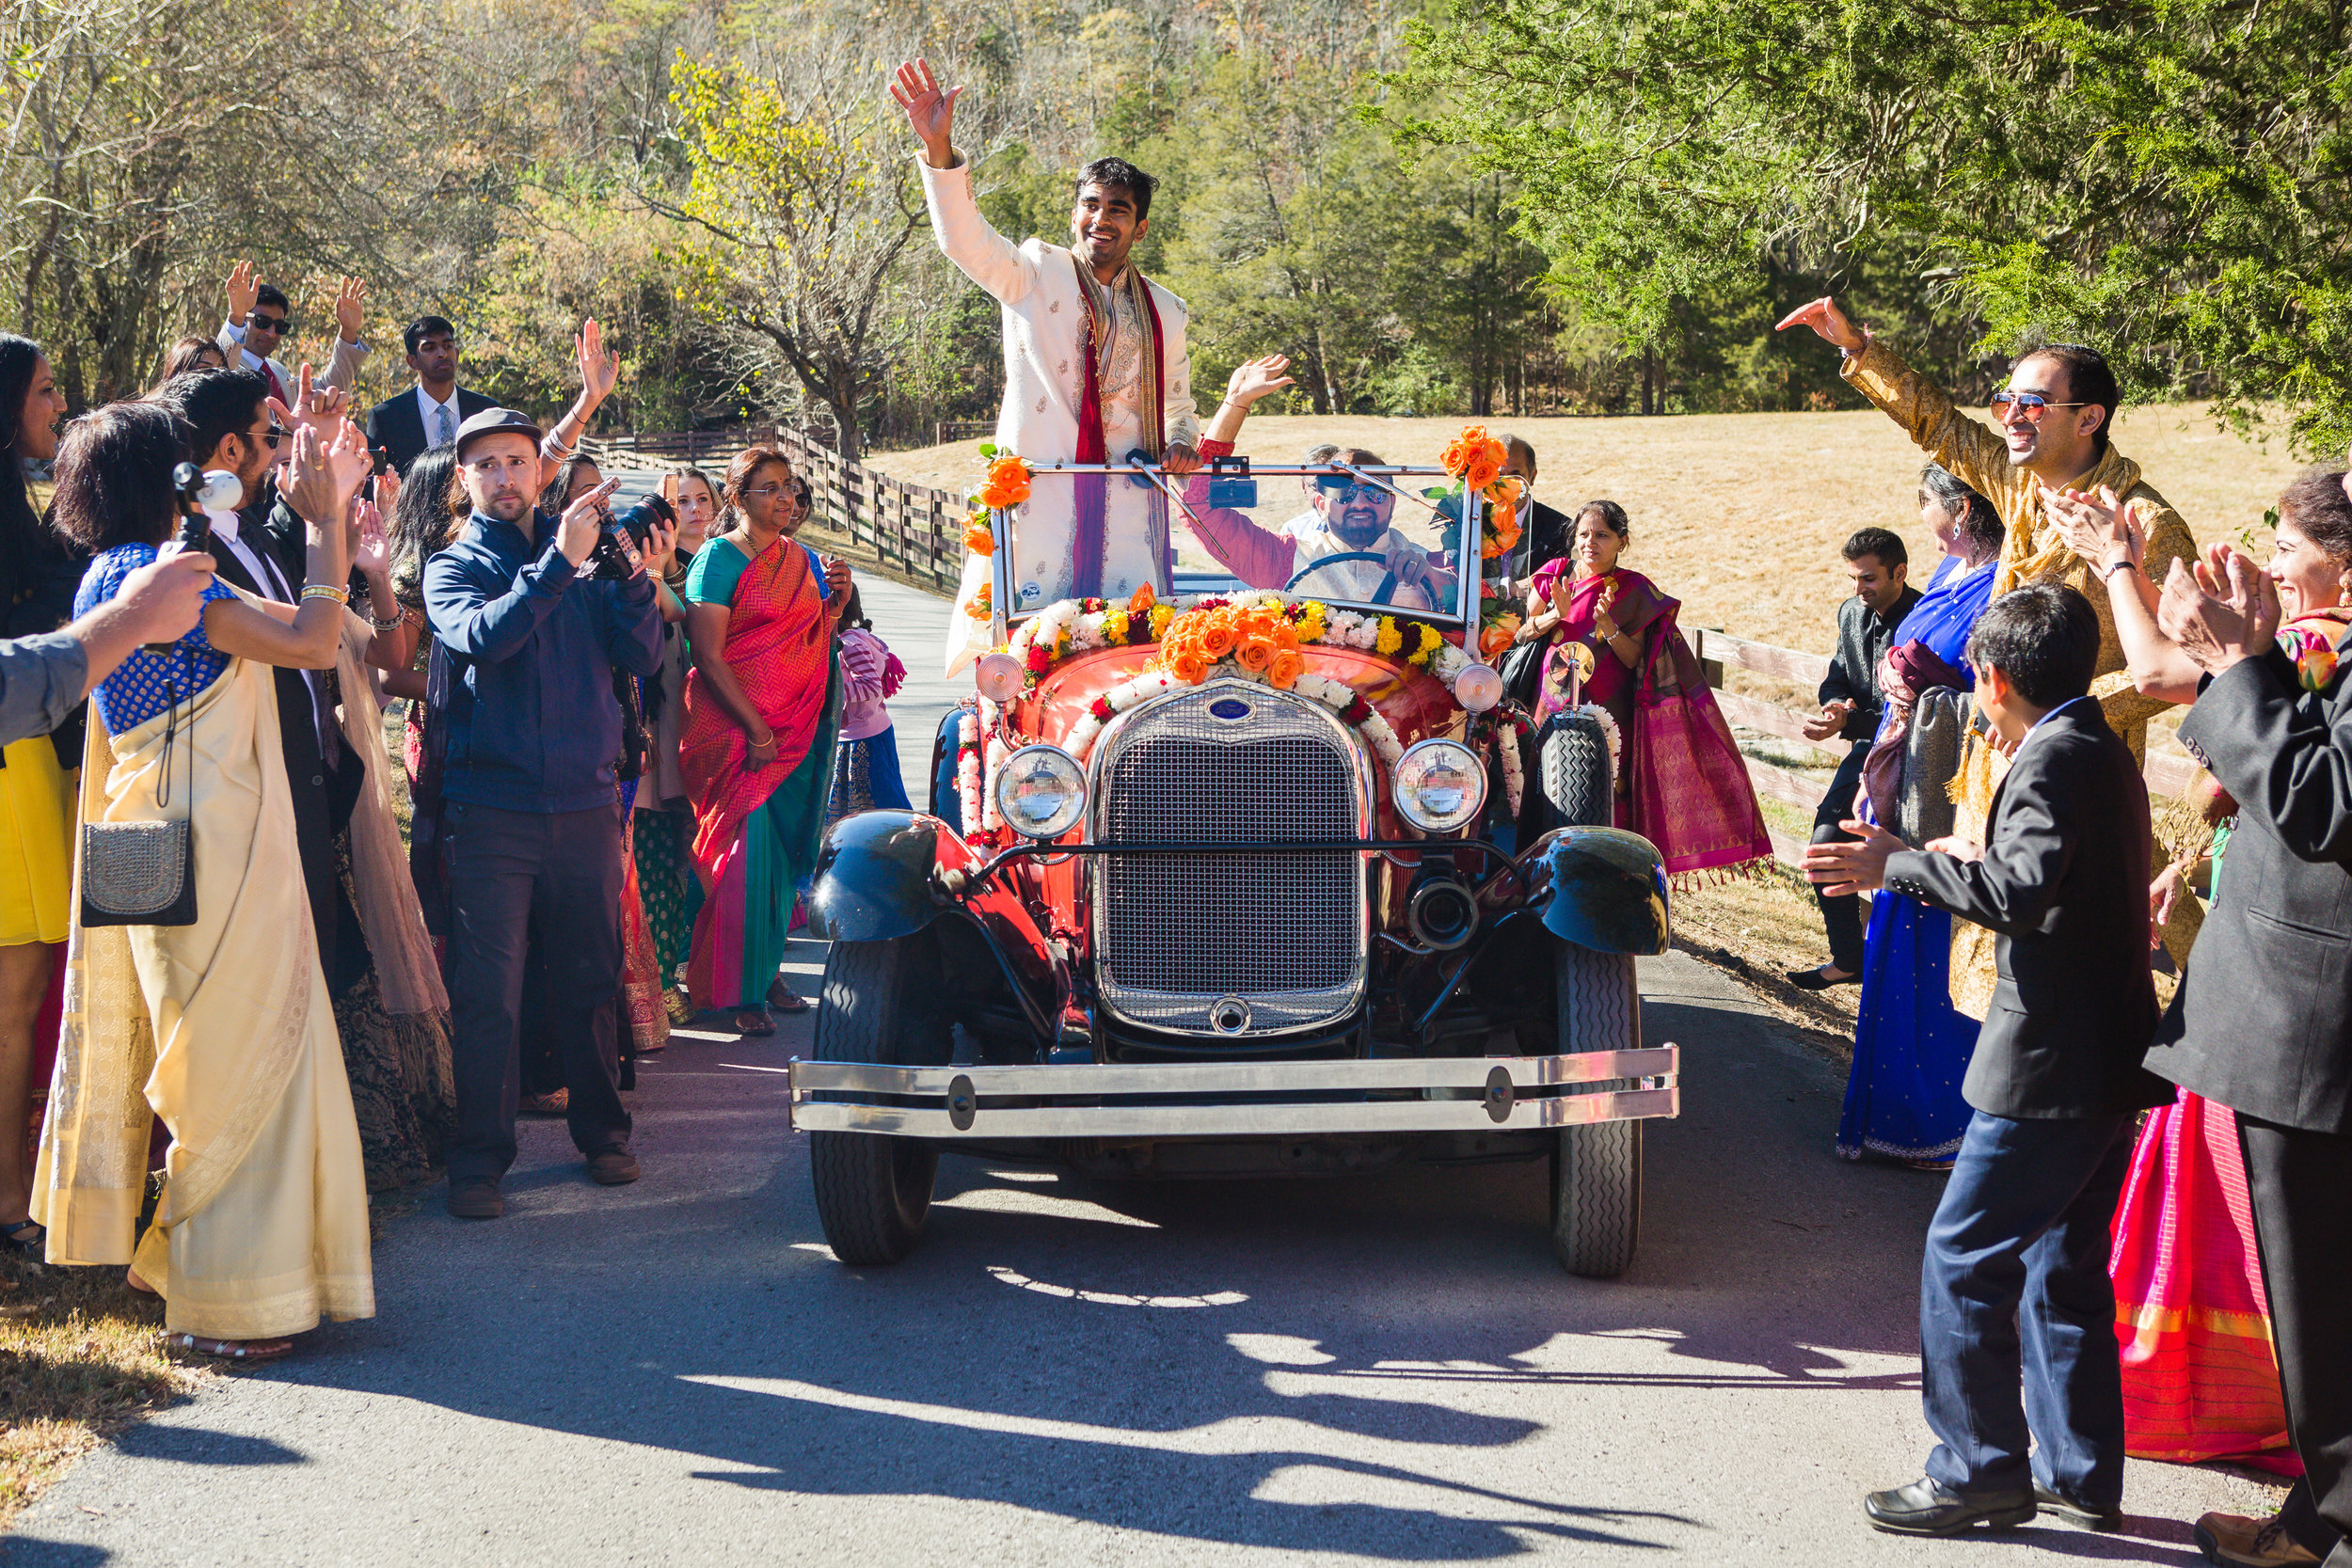 AnjaliArvind-Saturday-Baraat-Proof-3600px-083-_F5A1784.jpg